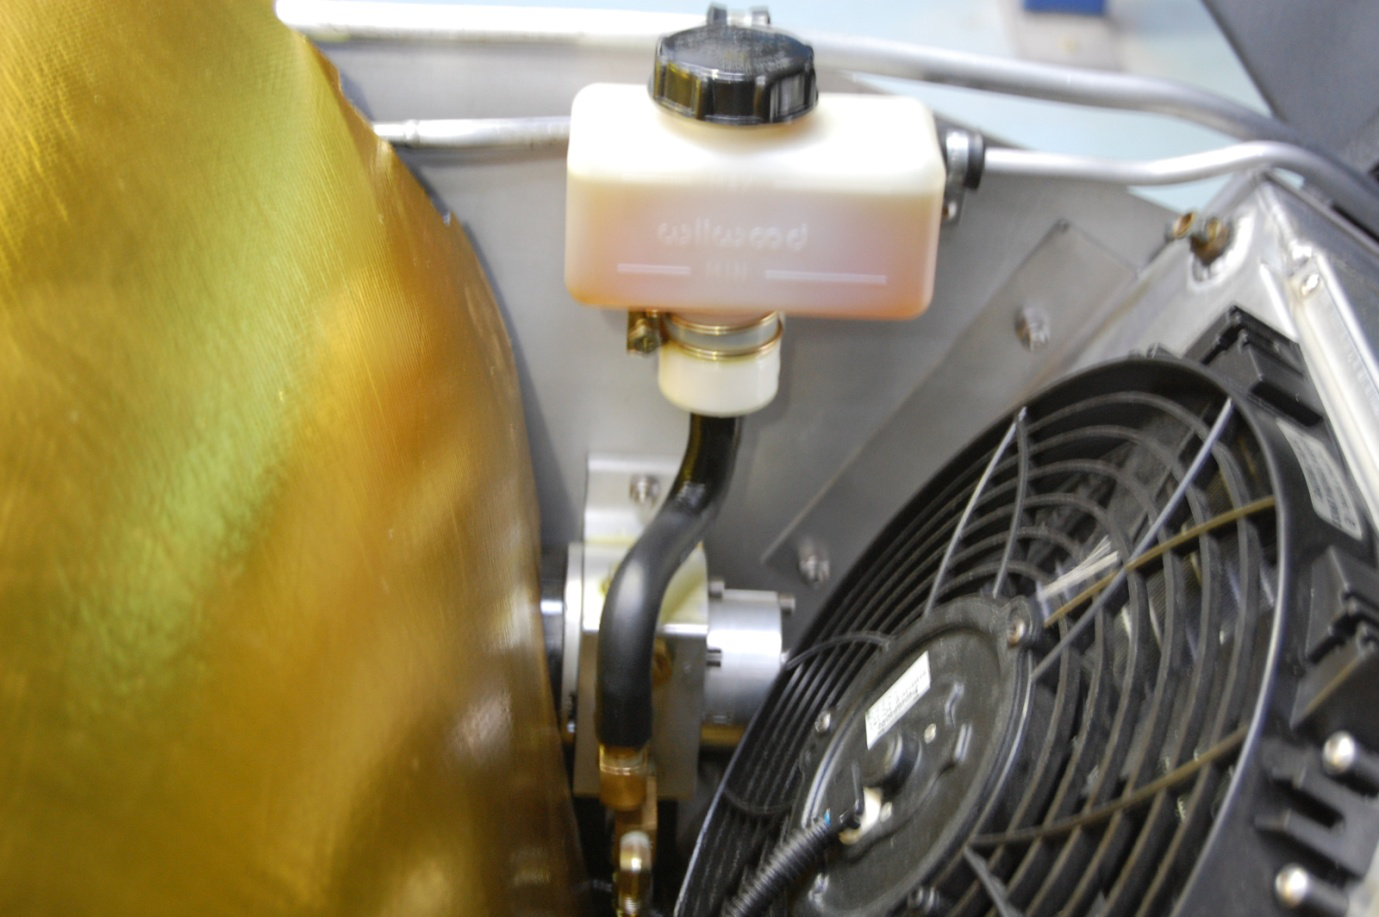 Detail of lift kit pump and reservoir installed in front radiator compartment on a Superlite SL-C.